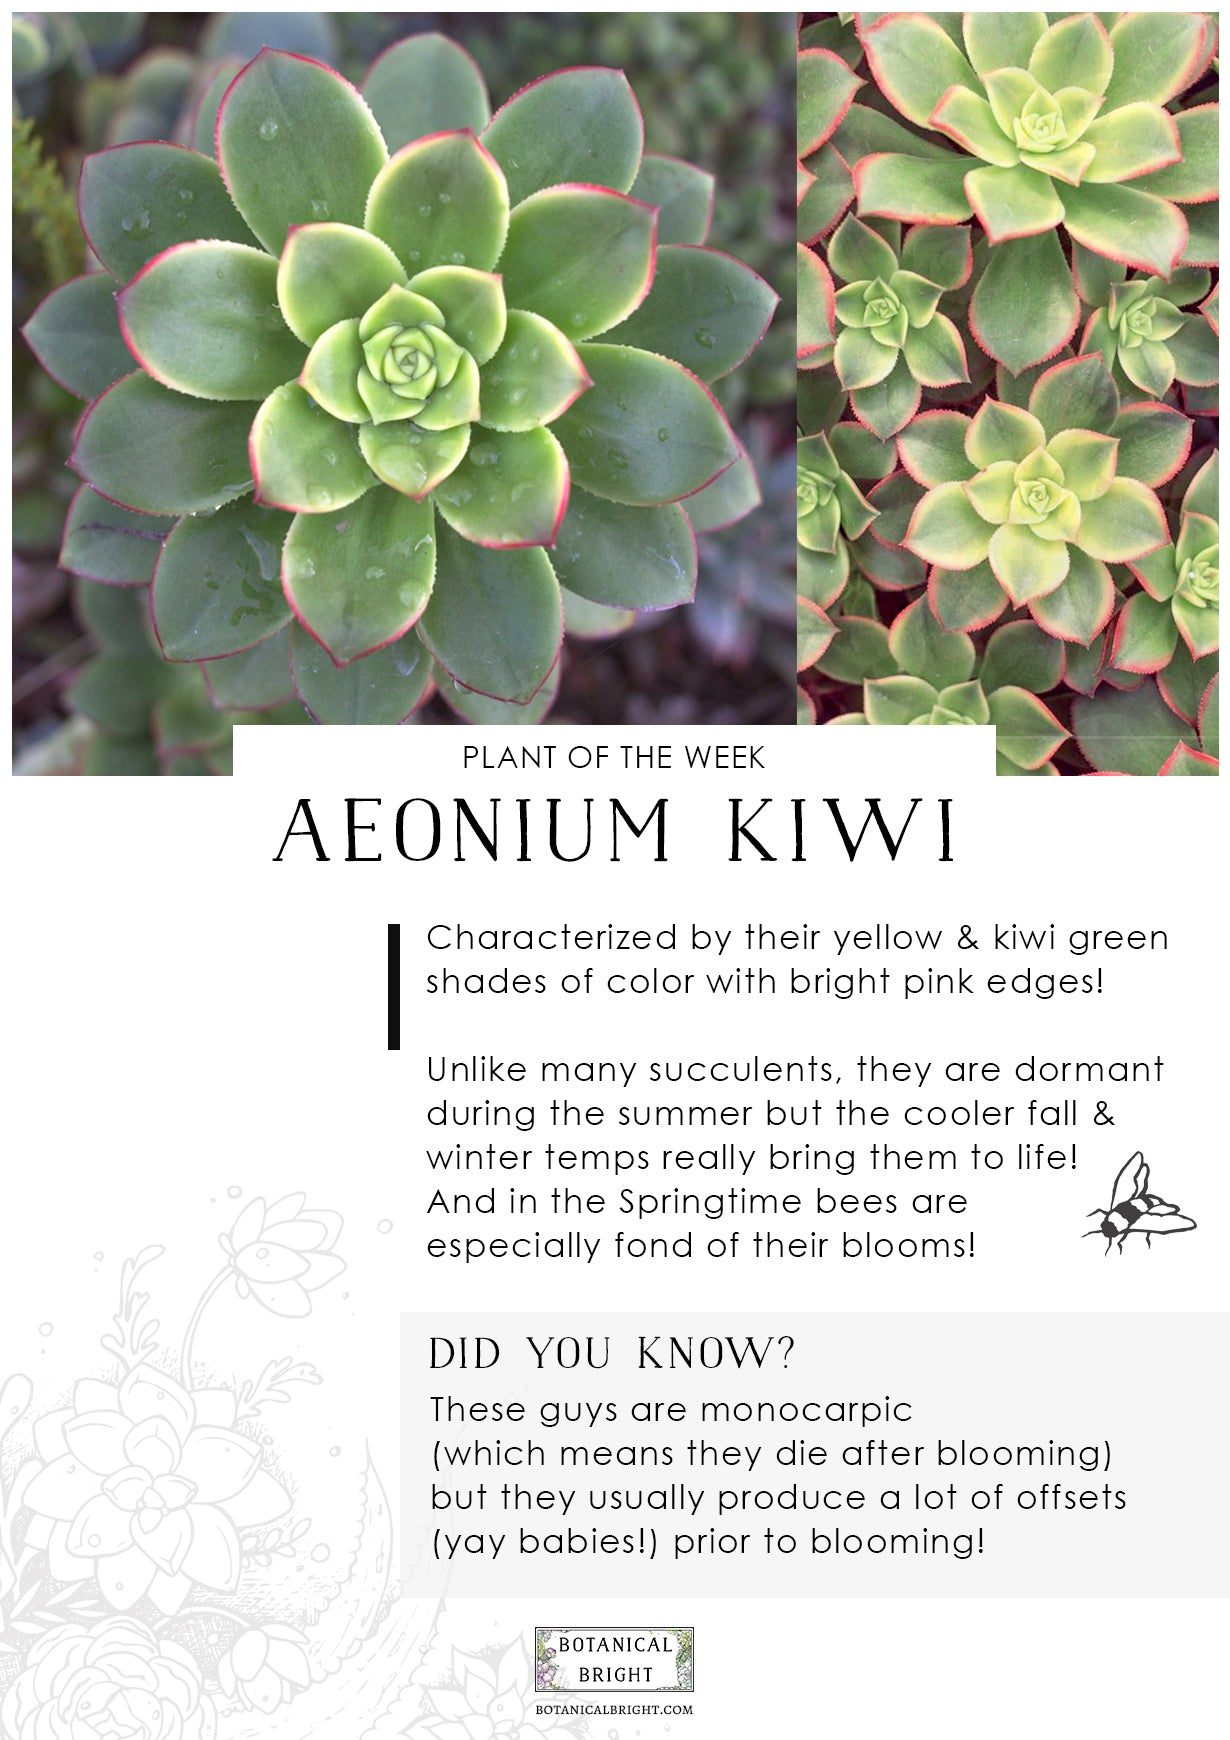 Plant of the Week - Aeonium Kiwi